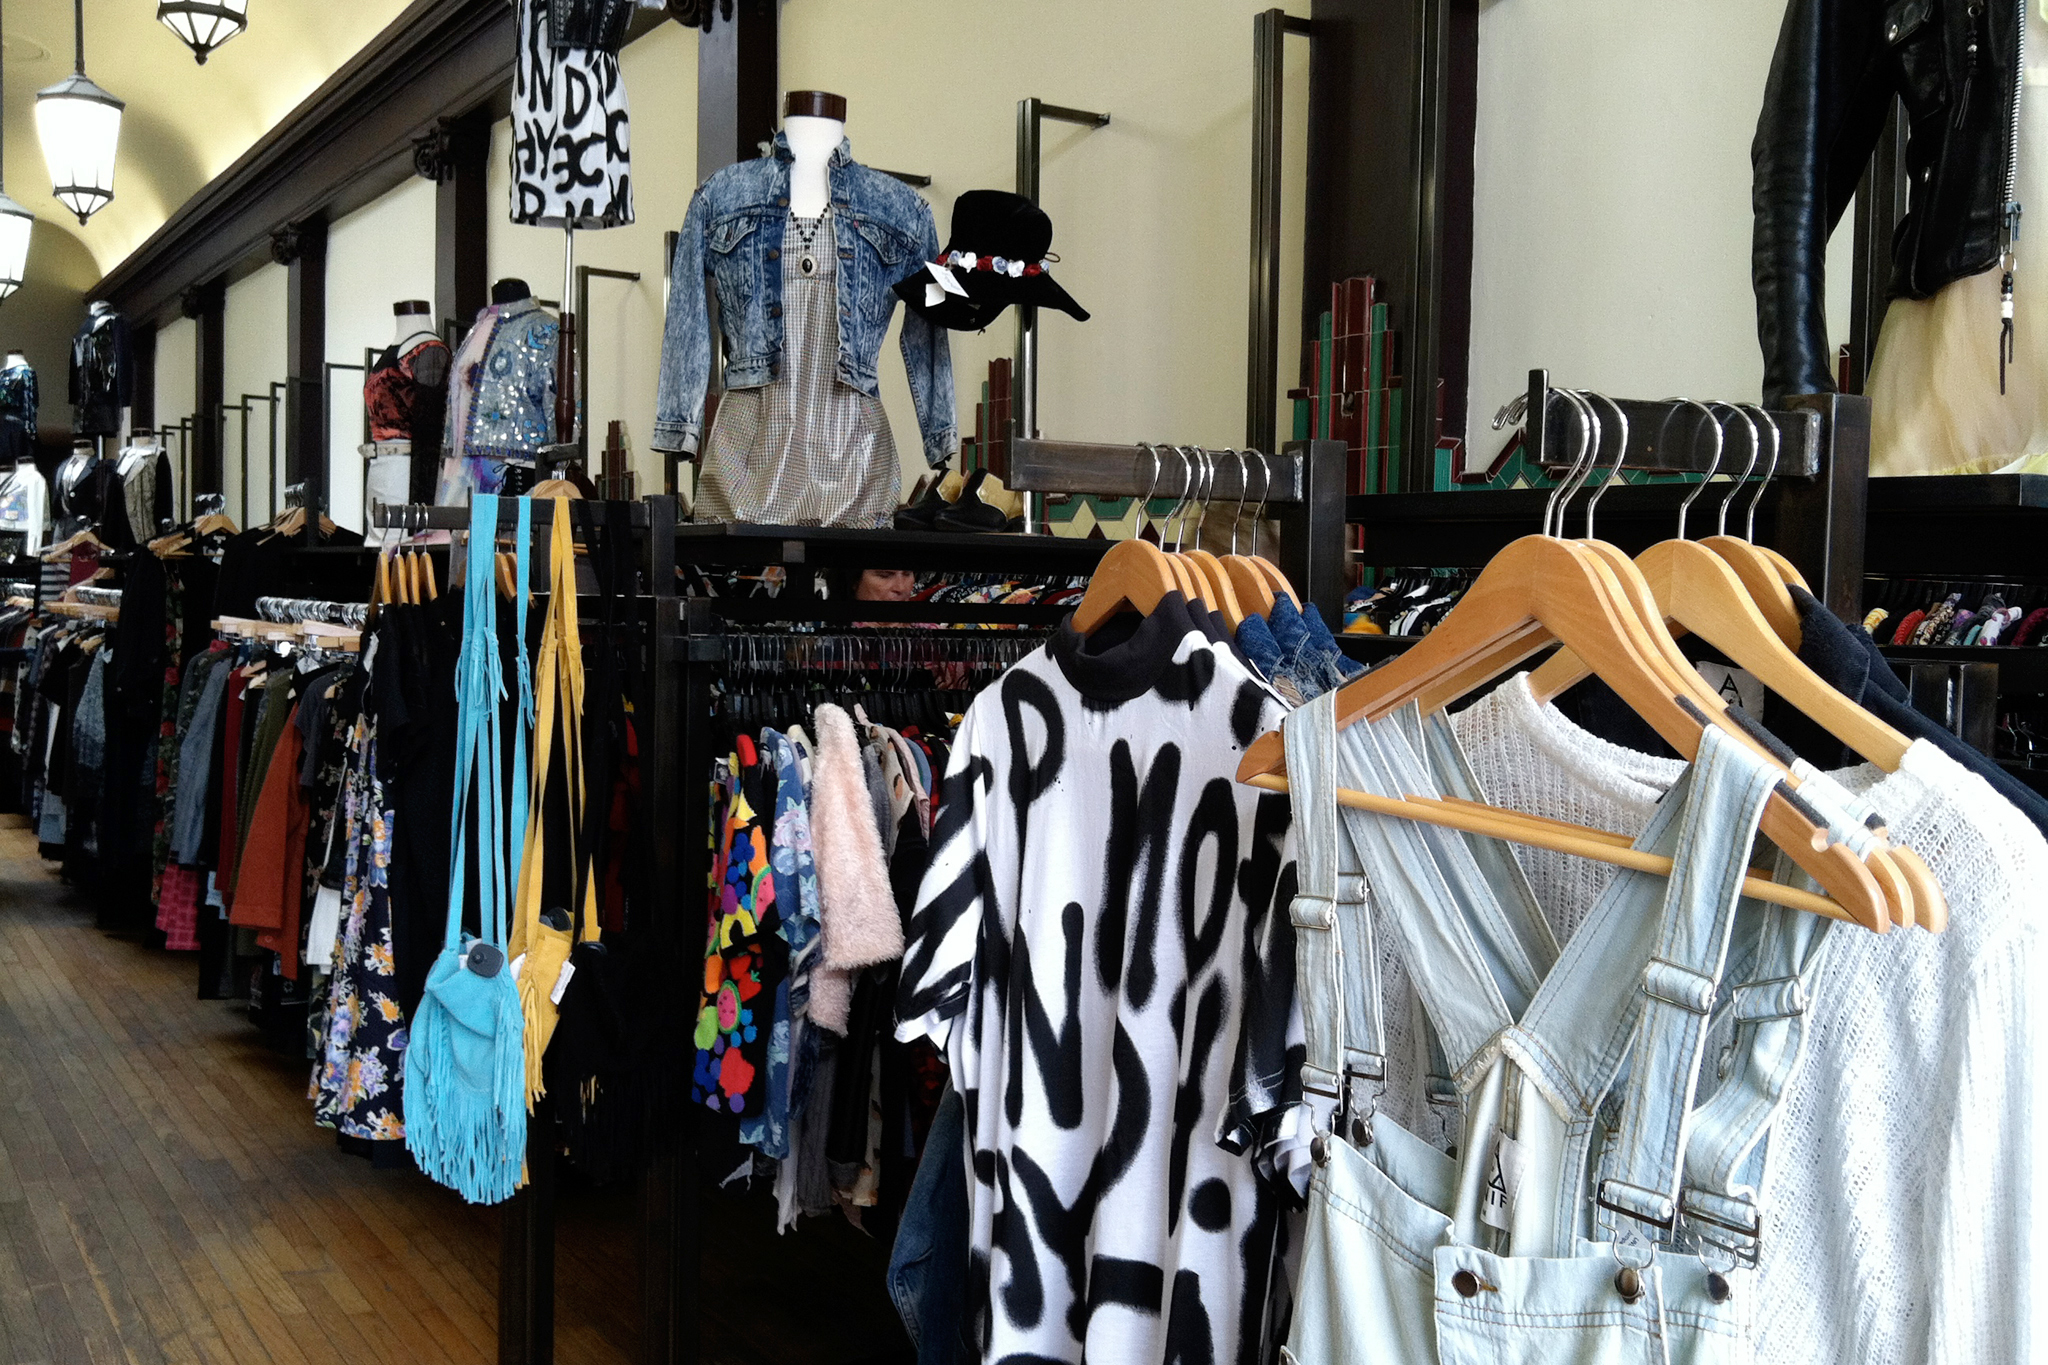 Best Thrift Stores For Clothing And Housewares In San